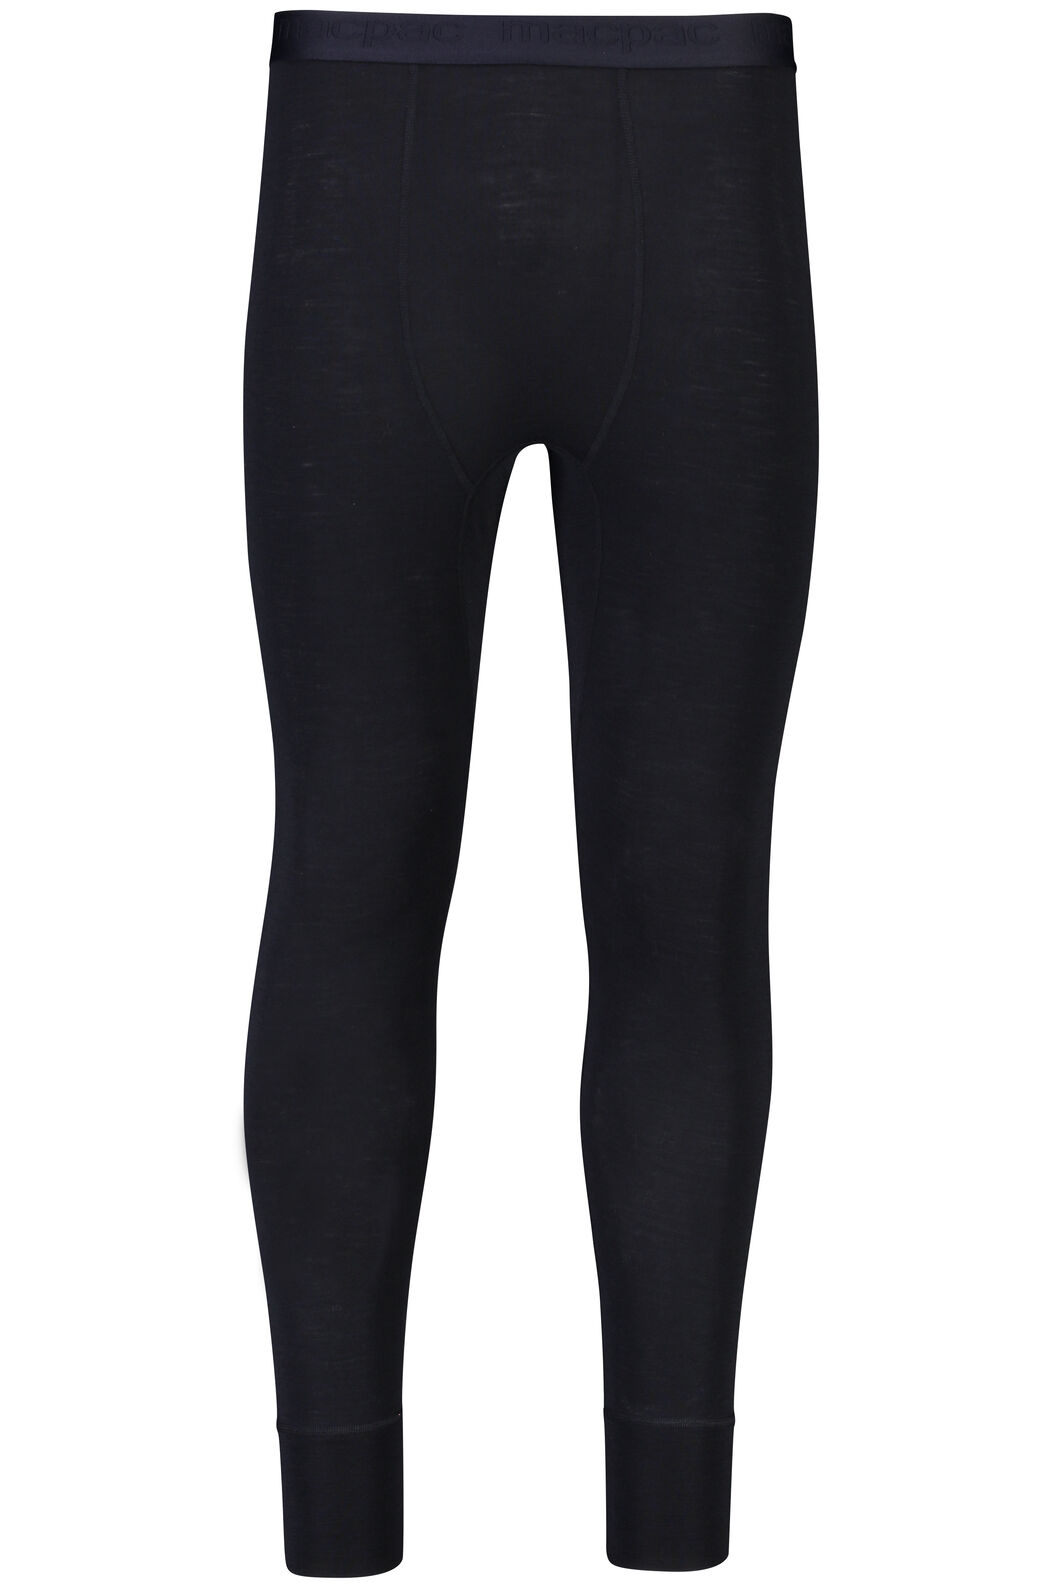 Macpac 220 Merino Long Johns - Men's, Black, hi-res